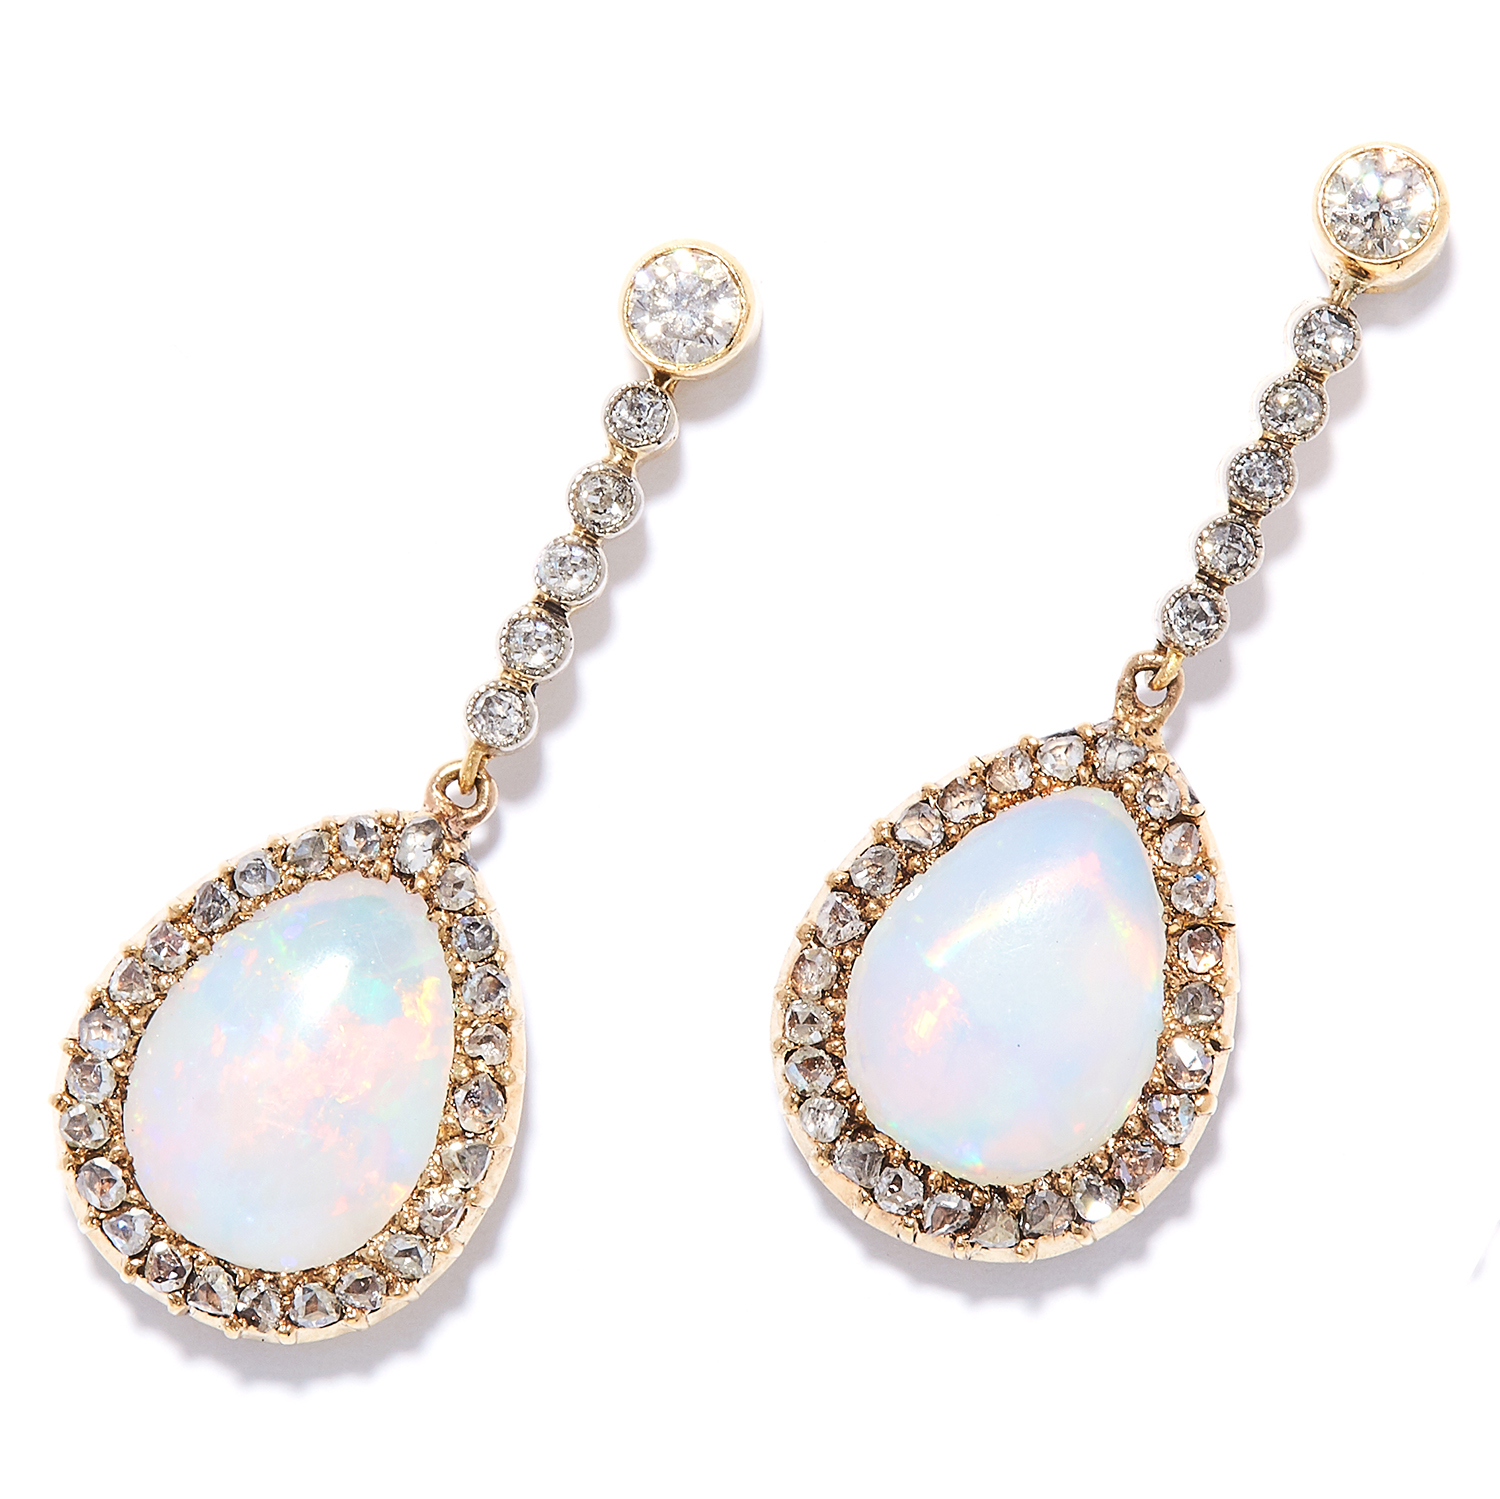 OPAL AND DIAMOND CLUSTER EARRINGS in high carat yellow gold, each set with a row of round cut